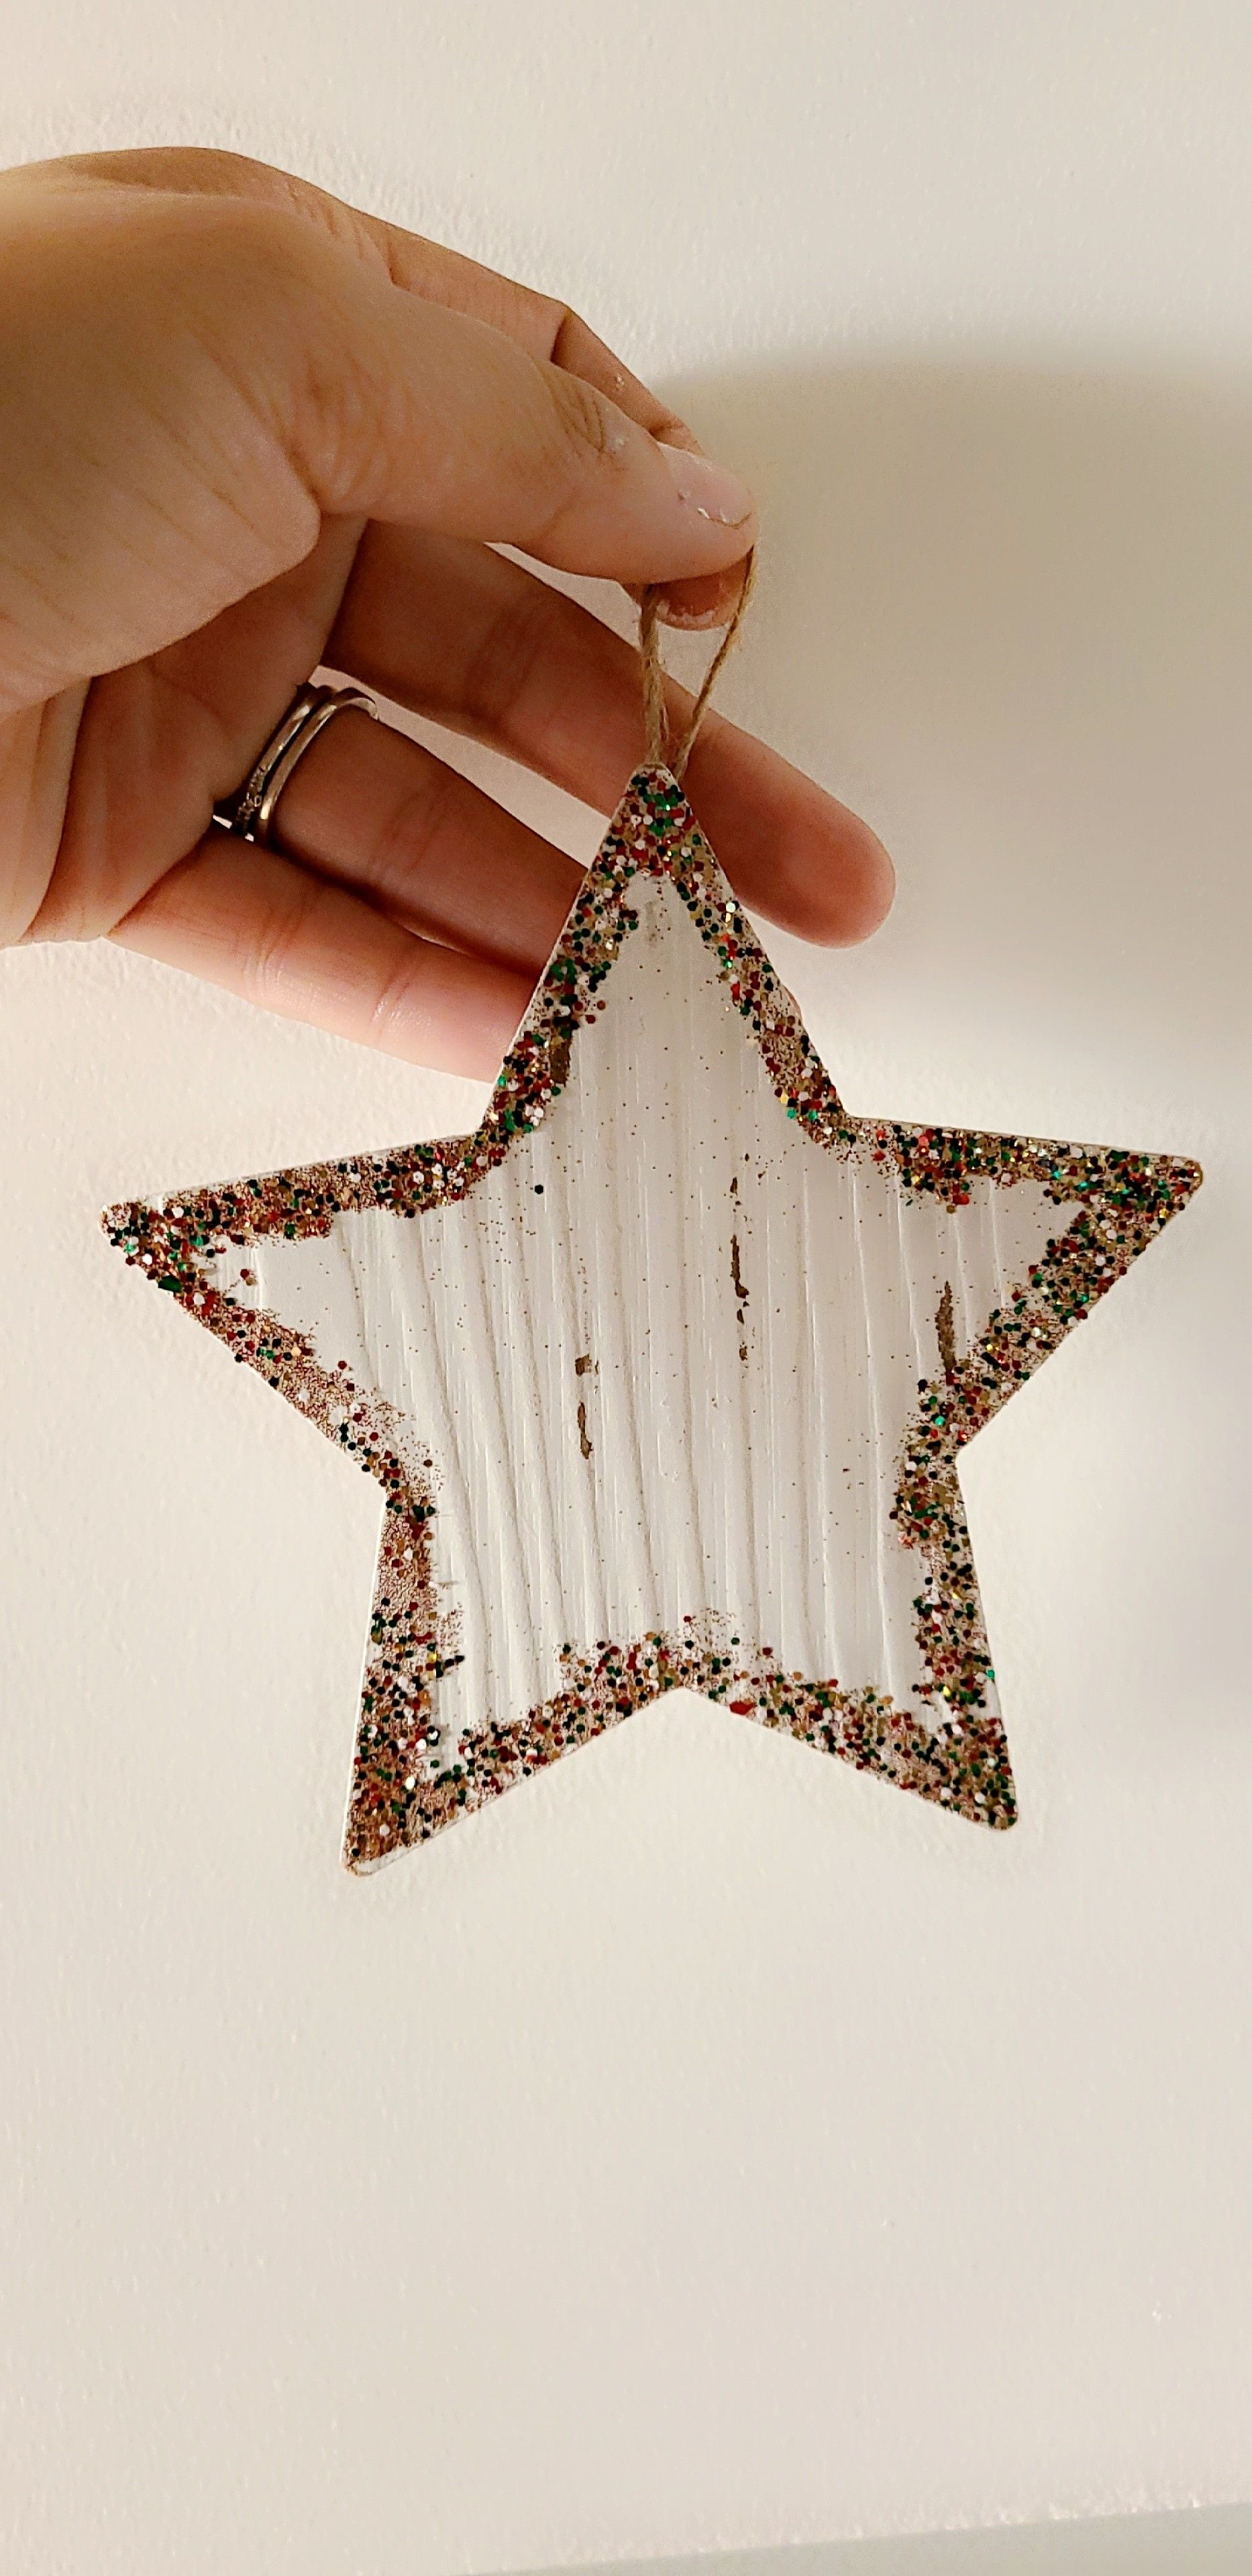 Hand made glass ornaments